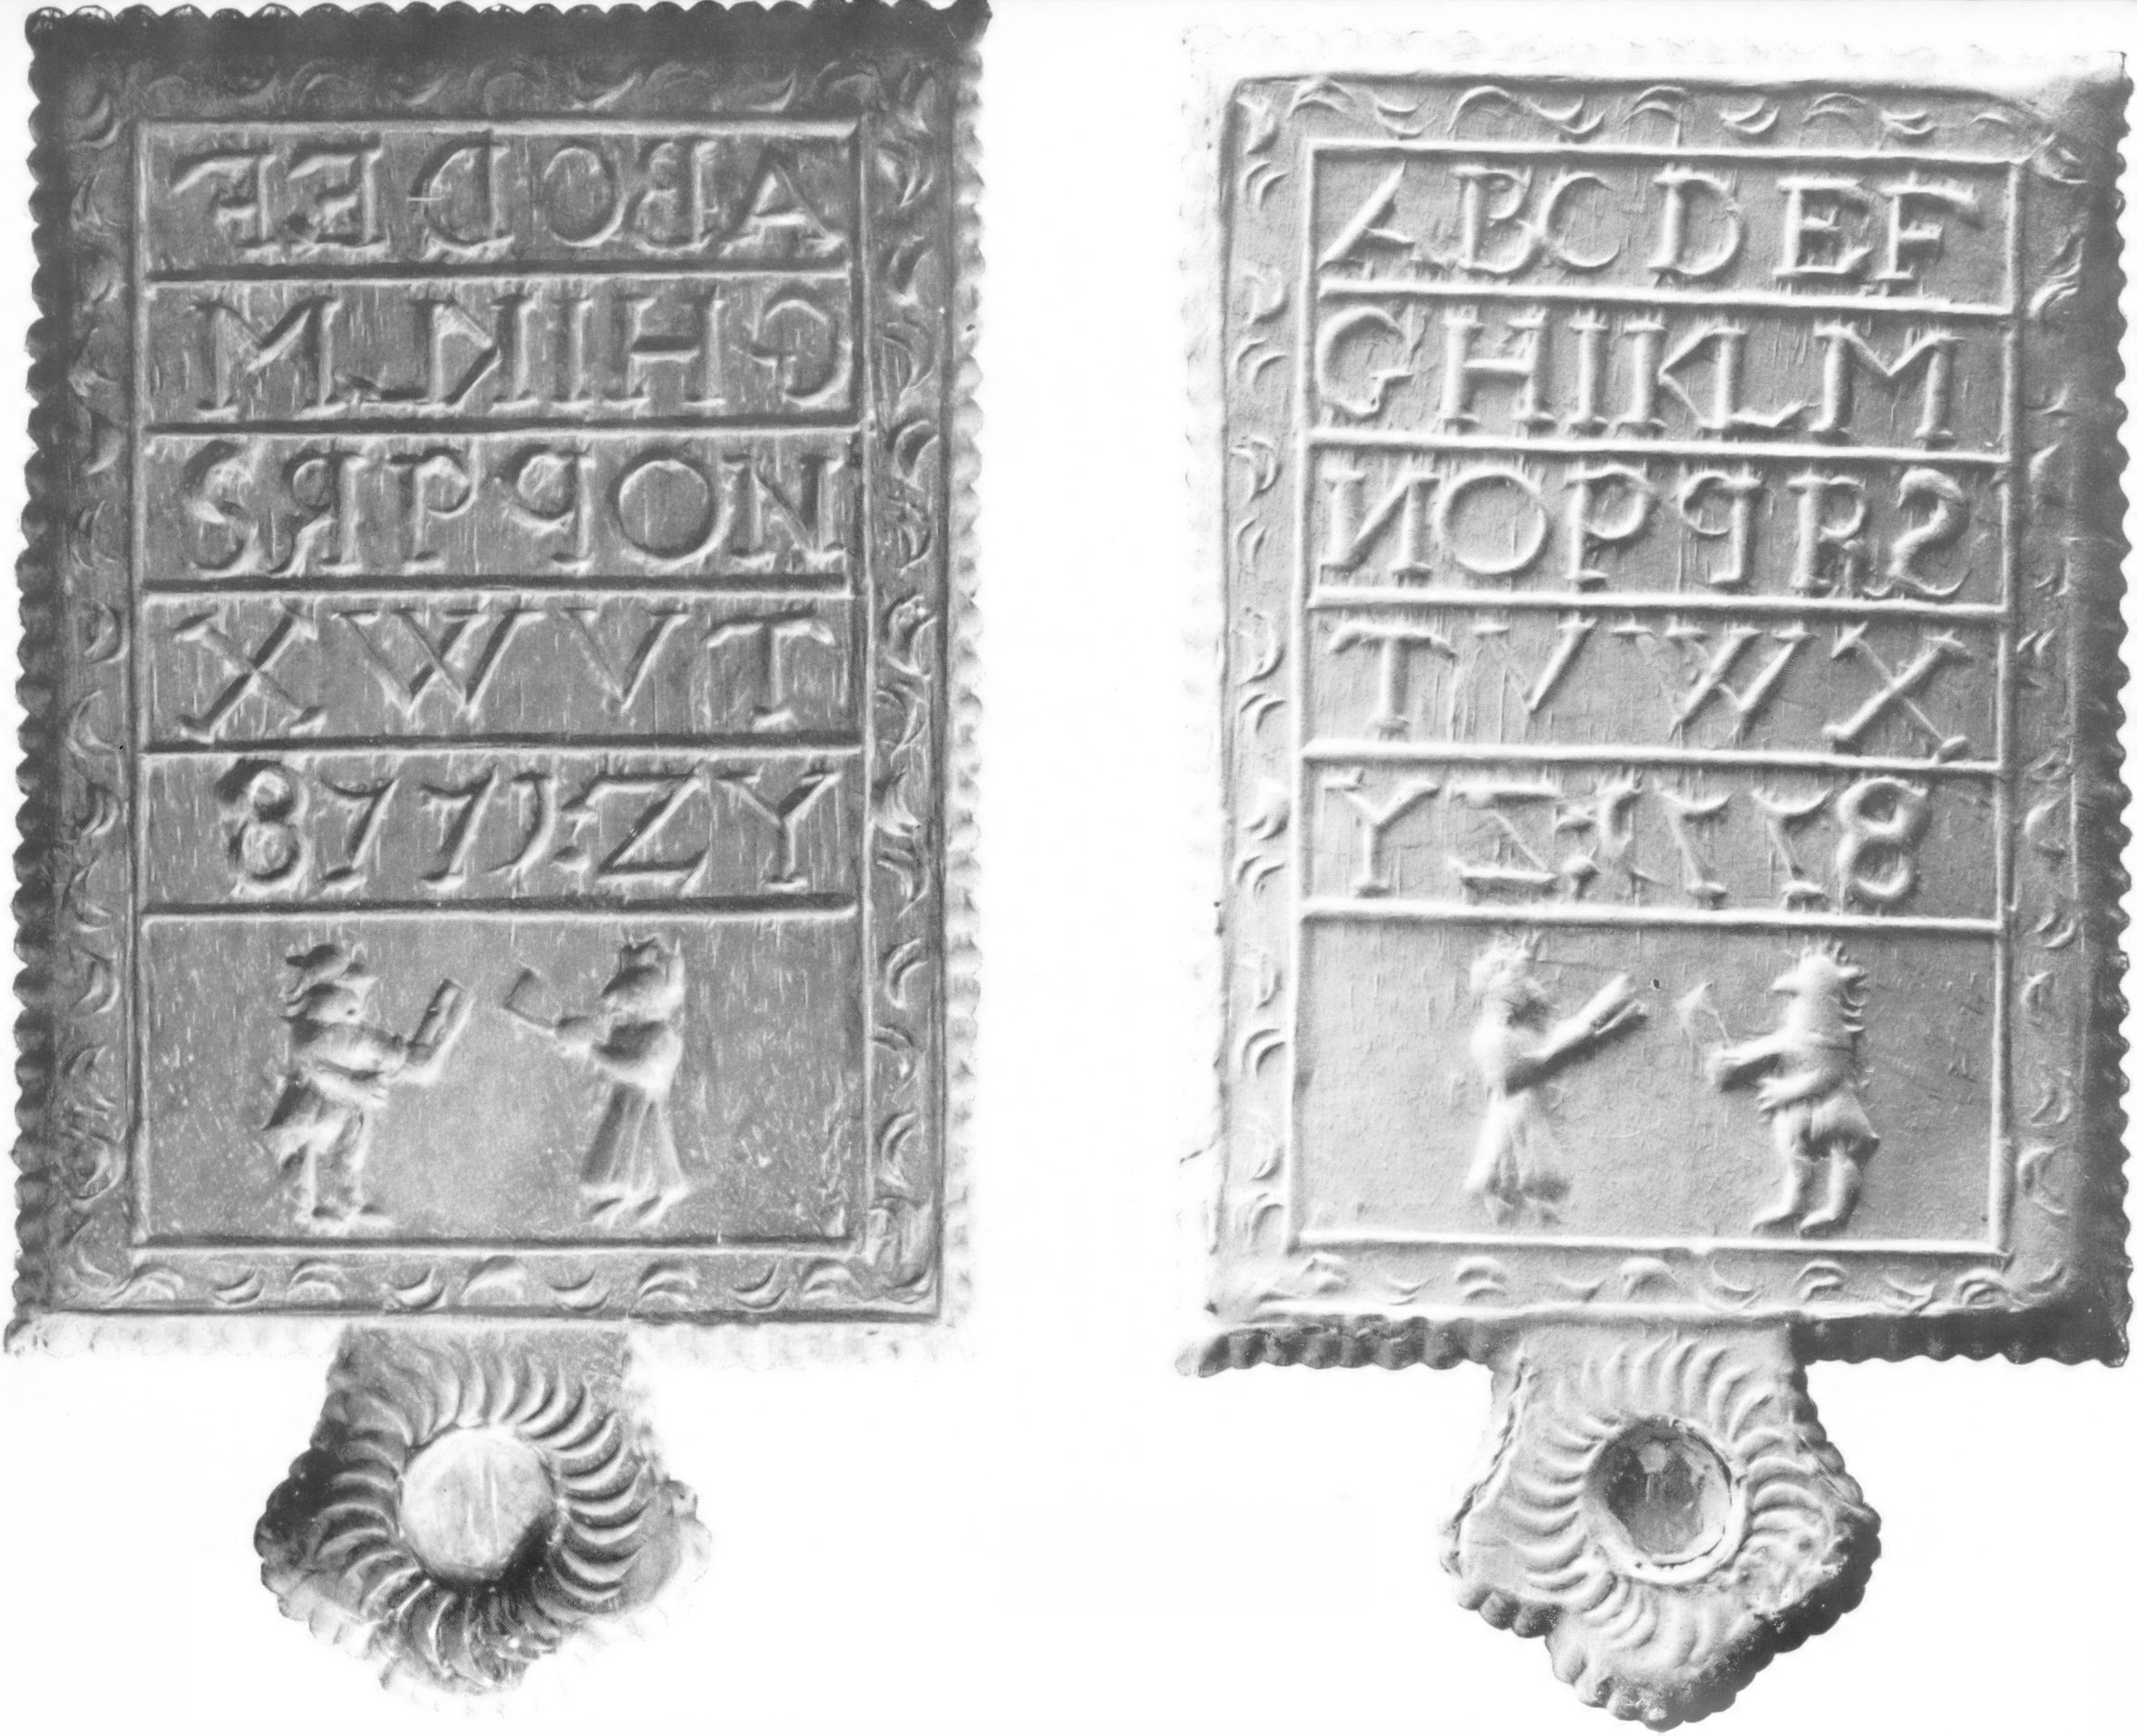 Gingerbread hornbooks, based on the wooden and leather educational hornbooks, were blocks of alphabetical letters or Roman numerals designed as learning tools for children.